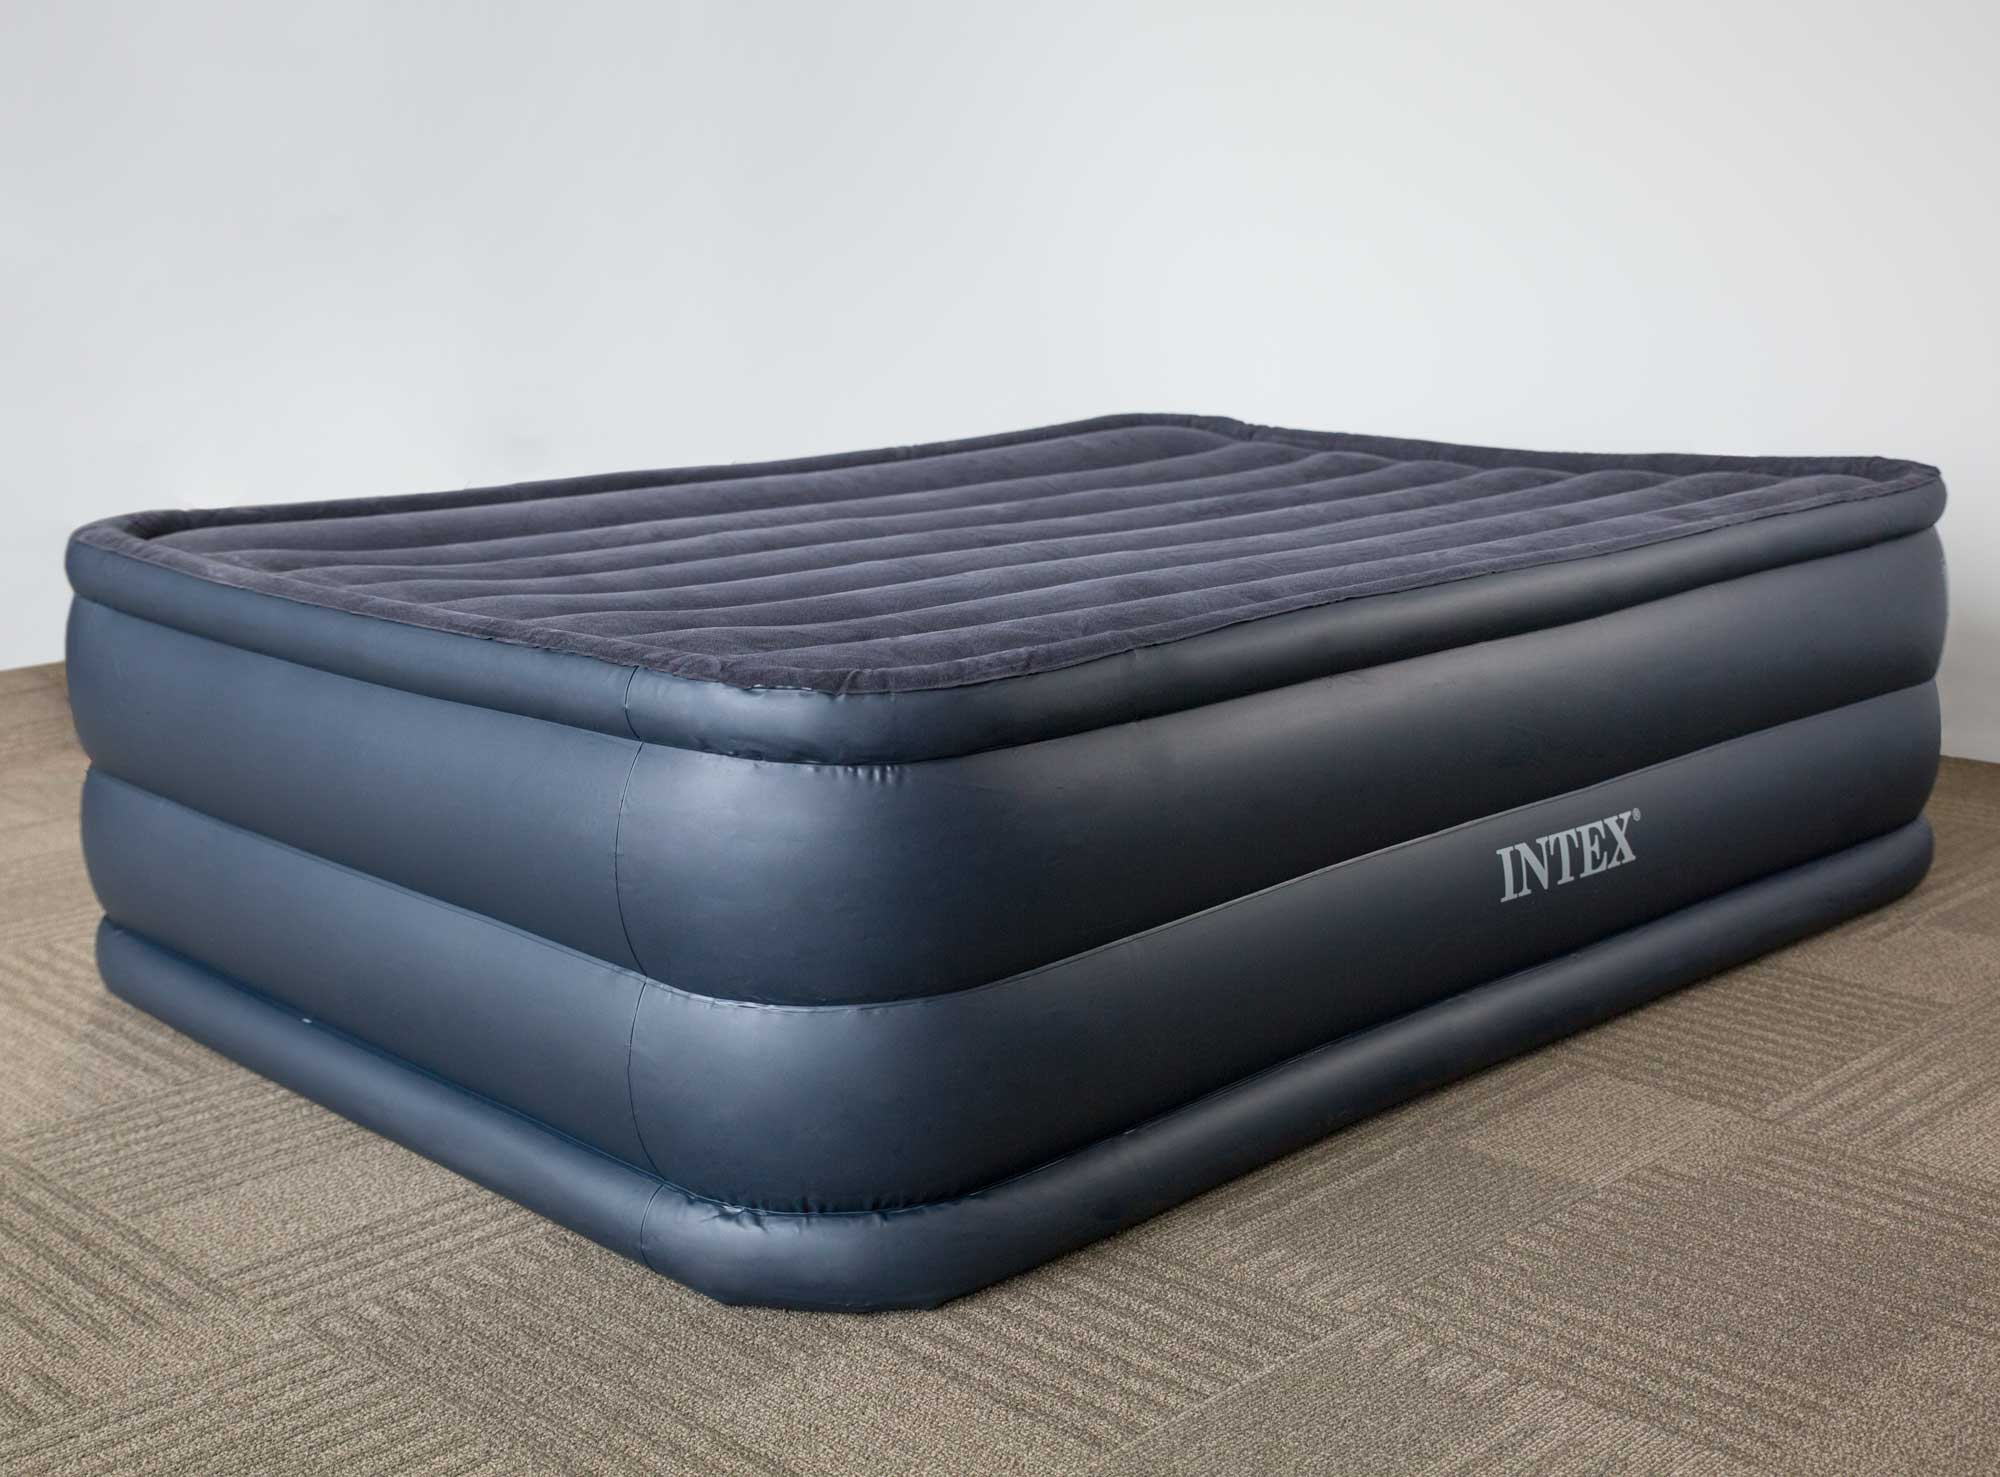 inflatable nz bed kathmandu beds a mattress gear roamertpuairbed